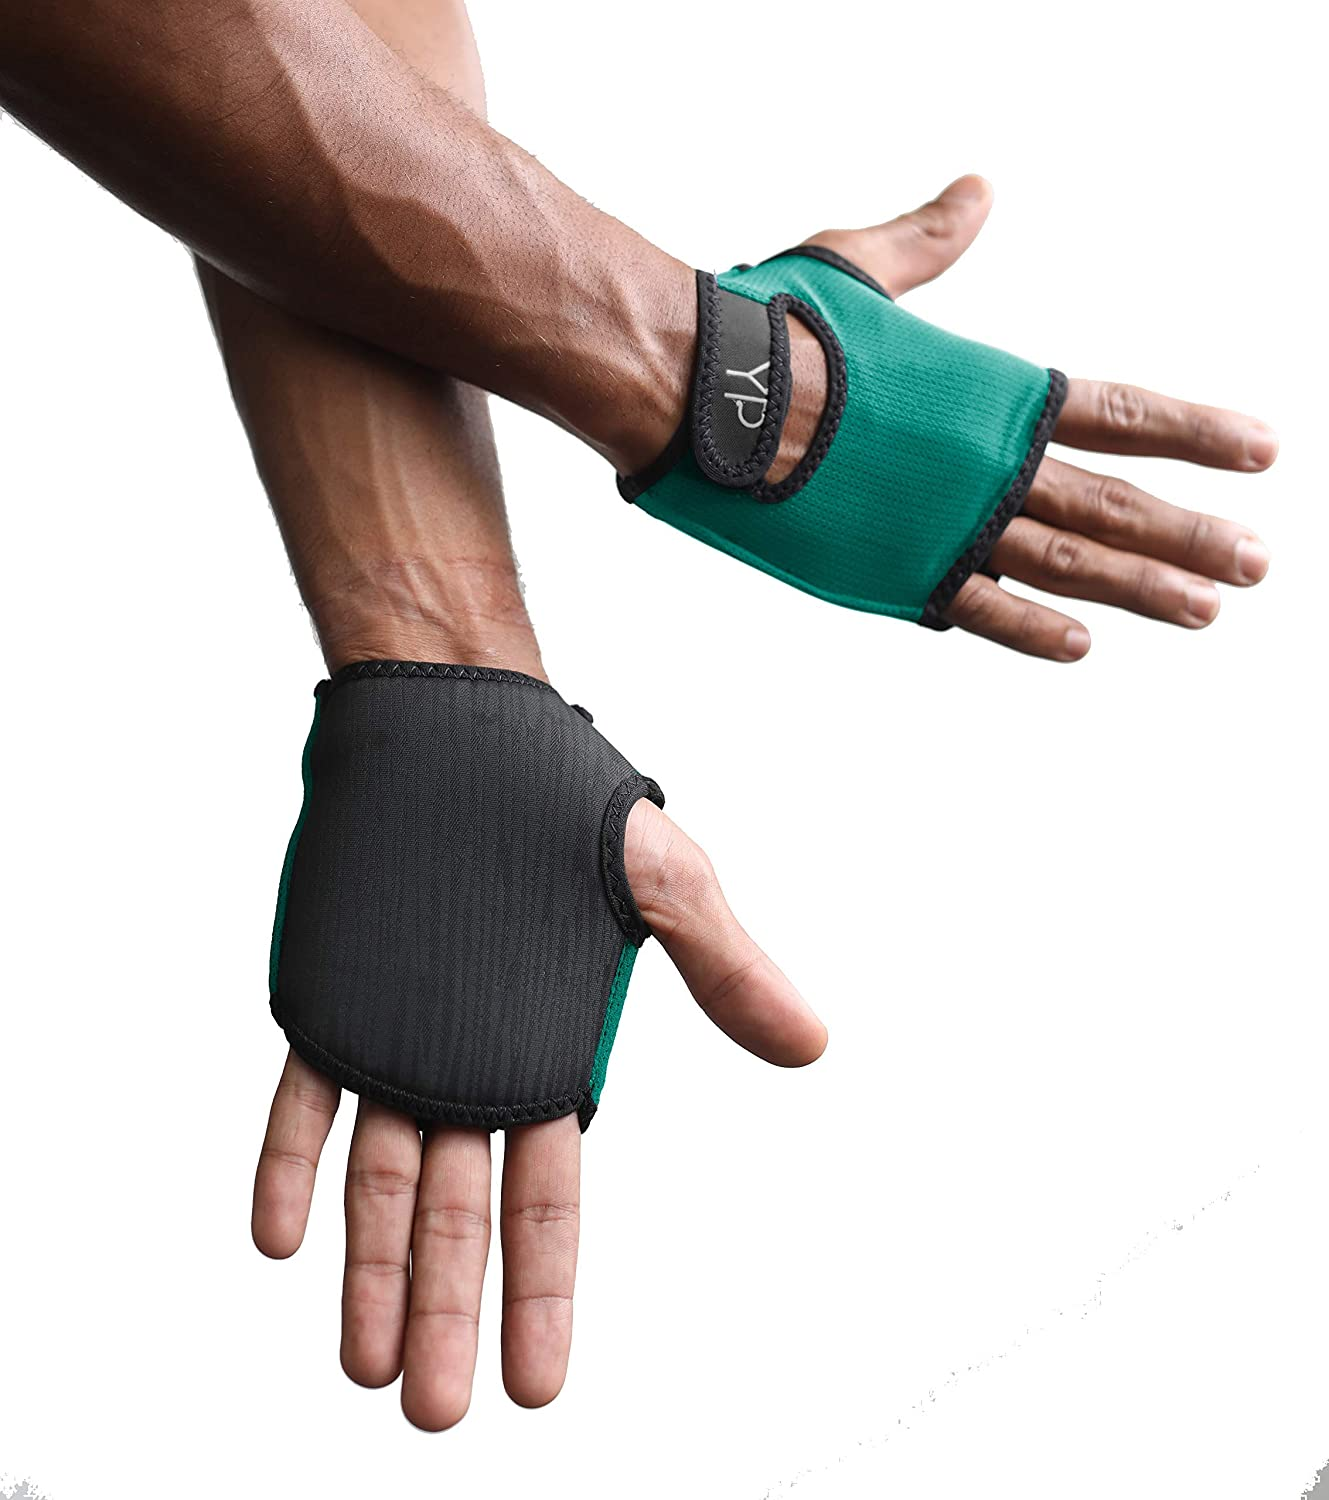 outlet YogaPaws SkinThin Non Slip Grip Gloves Men and Hand S Dealing full price reduction Women for